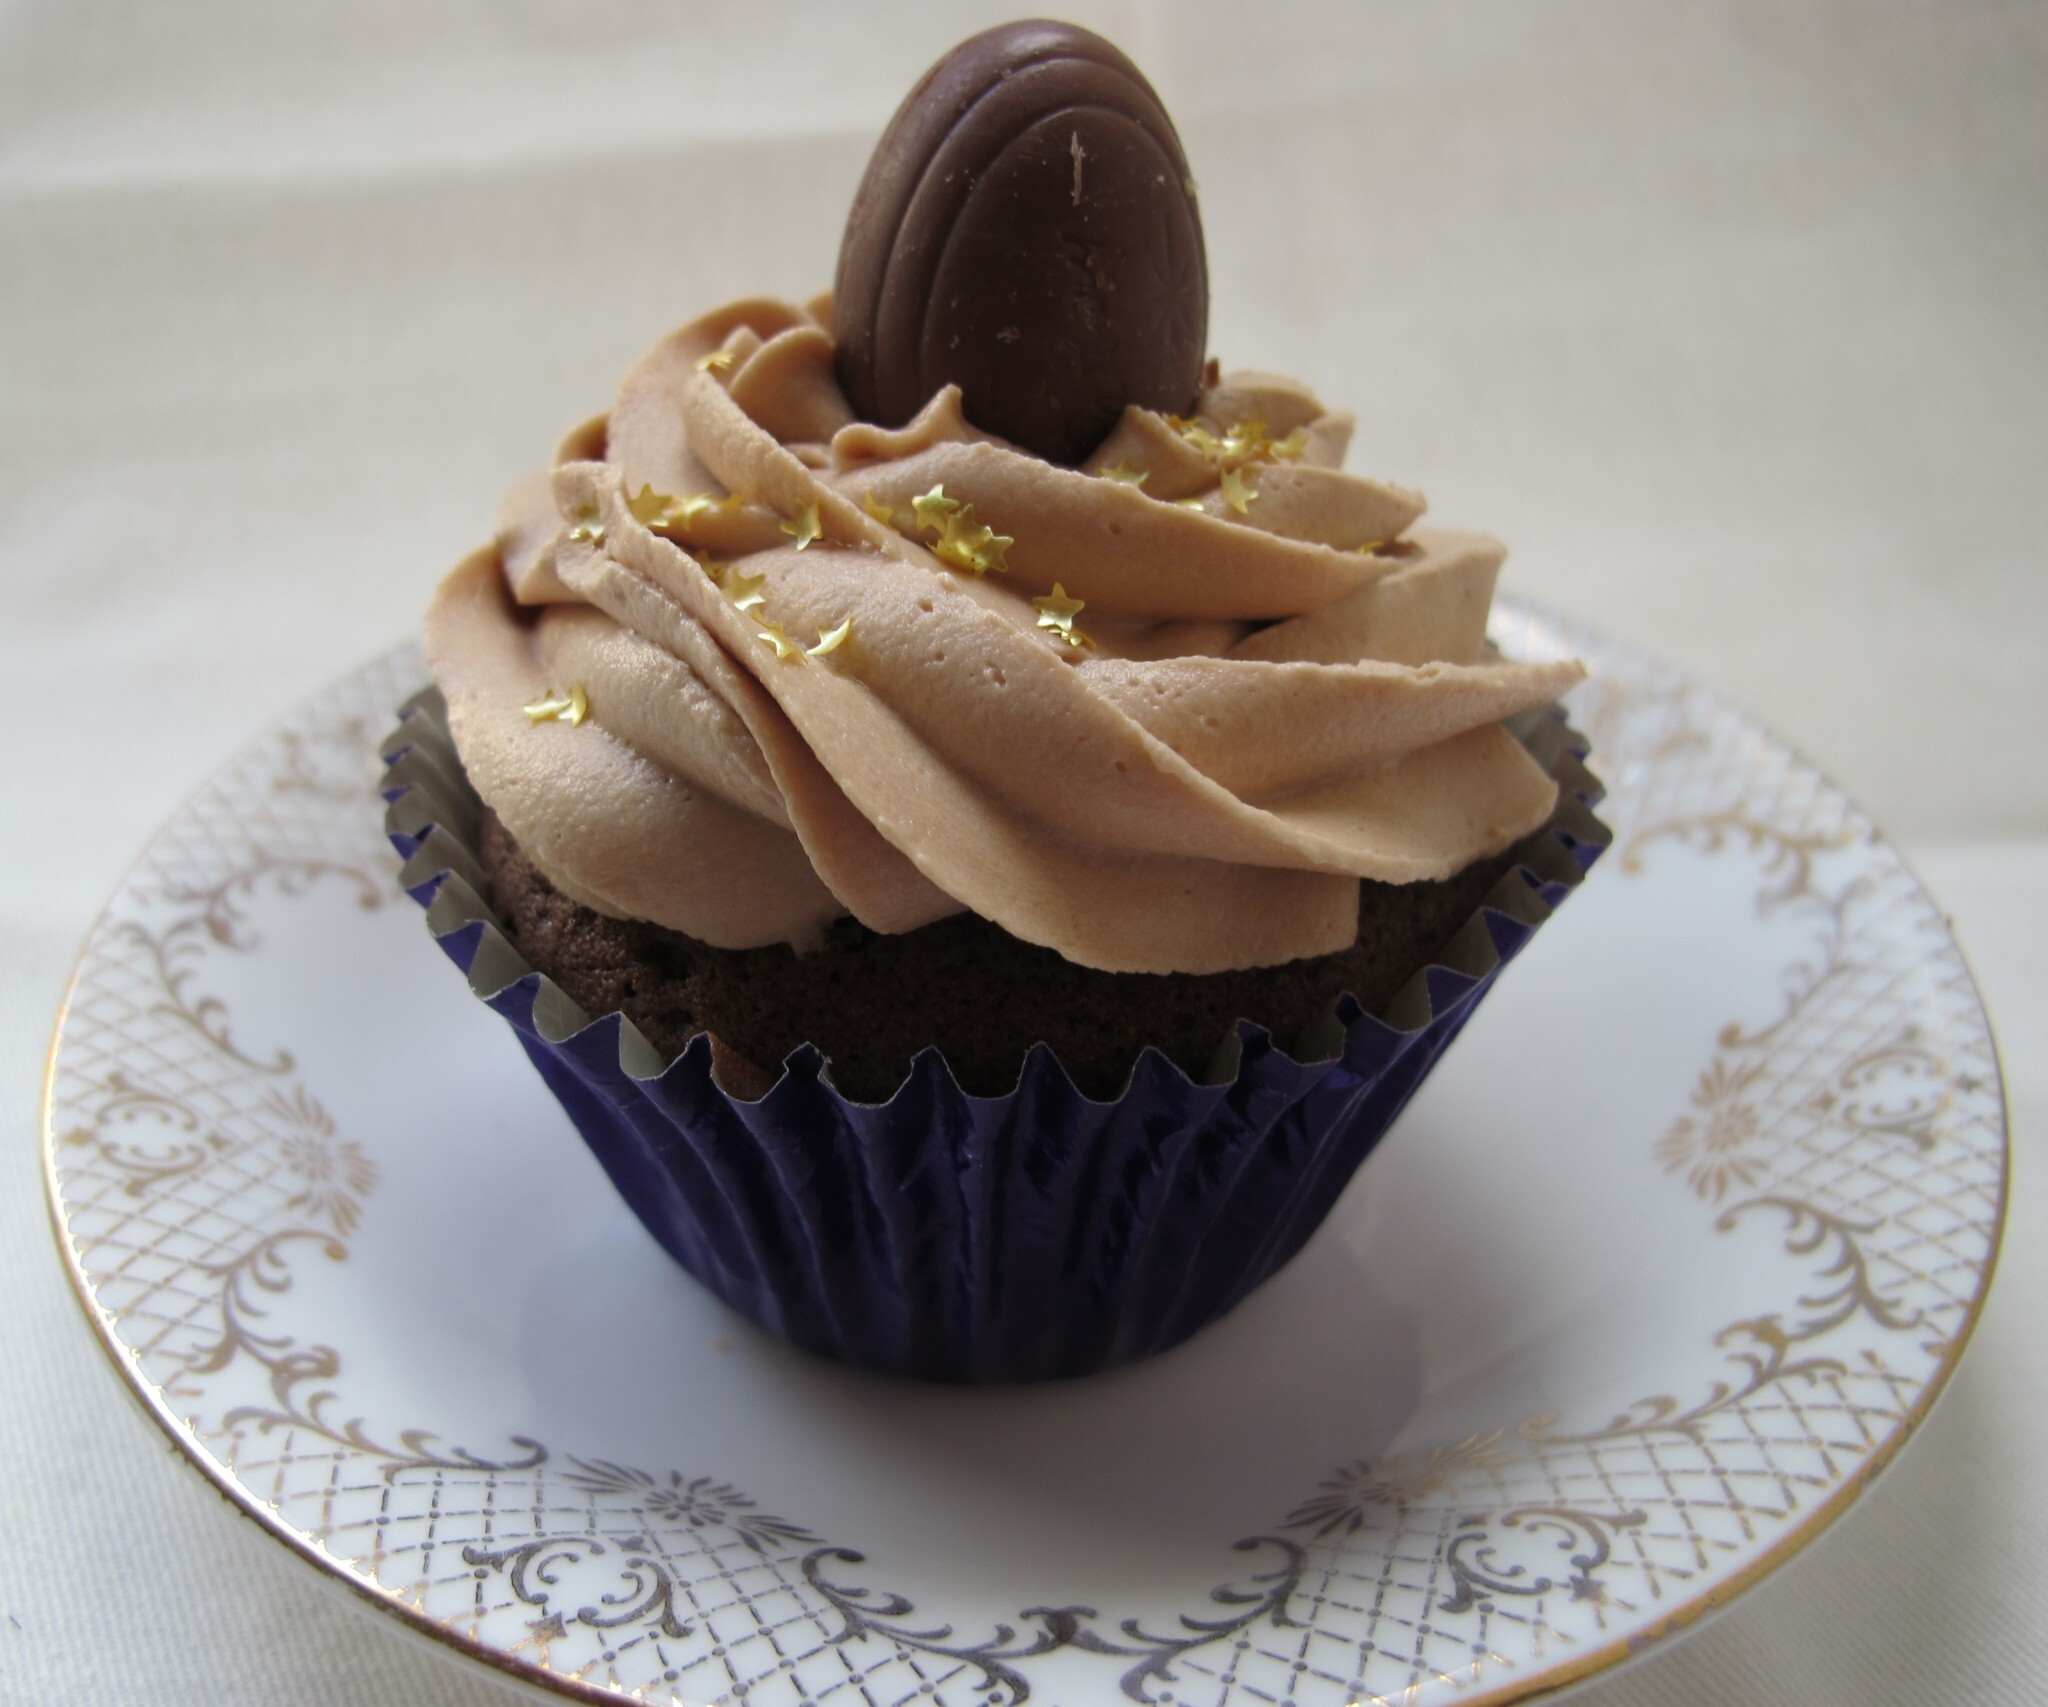 Cadbury's Creme Egg filled Cupcakes